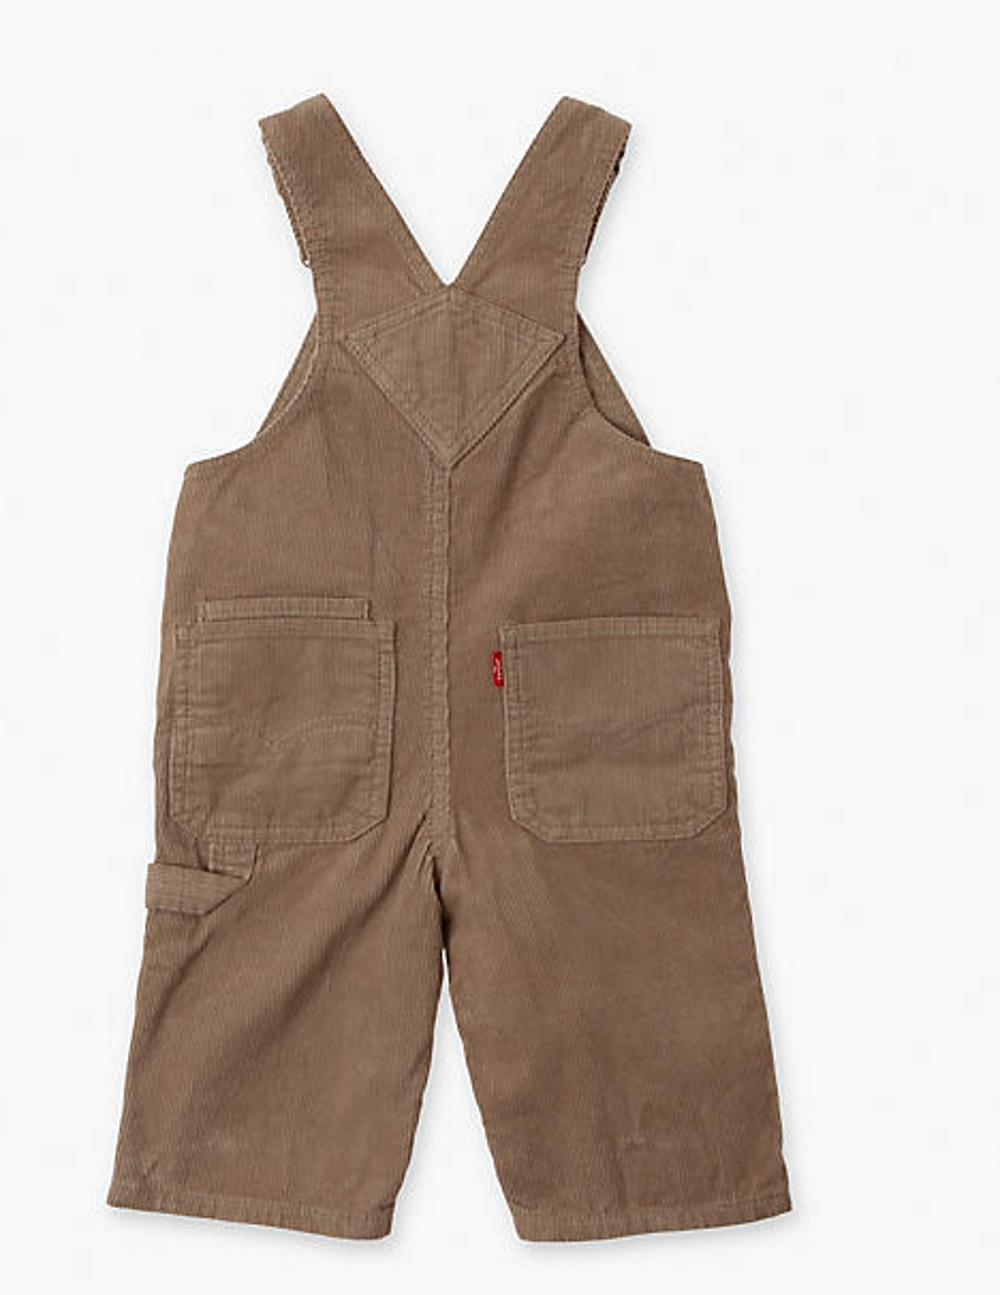 Little dudes of all ages can rock a pair of classic boys' overalls, a tried-and-true playtime staple. Choose from our selection of these iconic essentials in denim, soft cotton, plaid and canvas for infants, toddlers and boys. Nothing says summertime like a pair of jean short overalls with shiny brass buttons.